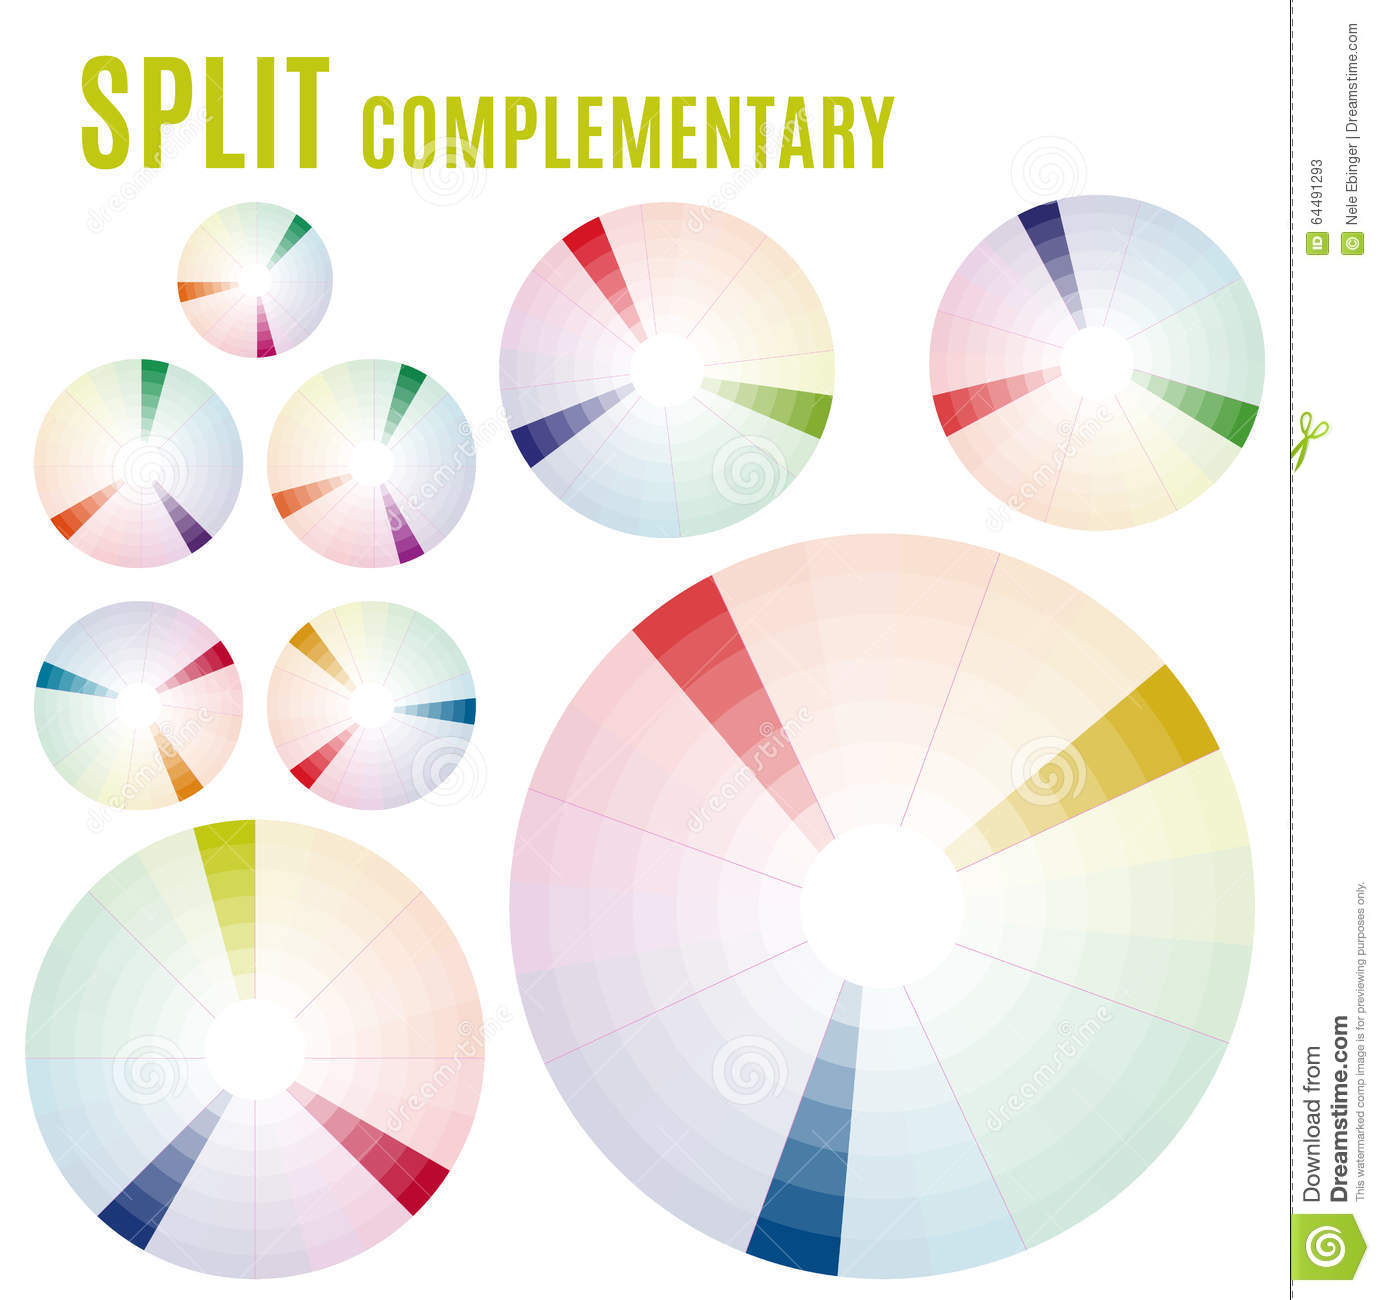 hight resolution of the psychology of colors diagram wheel basic colors meaning split complementary set part